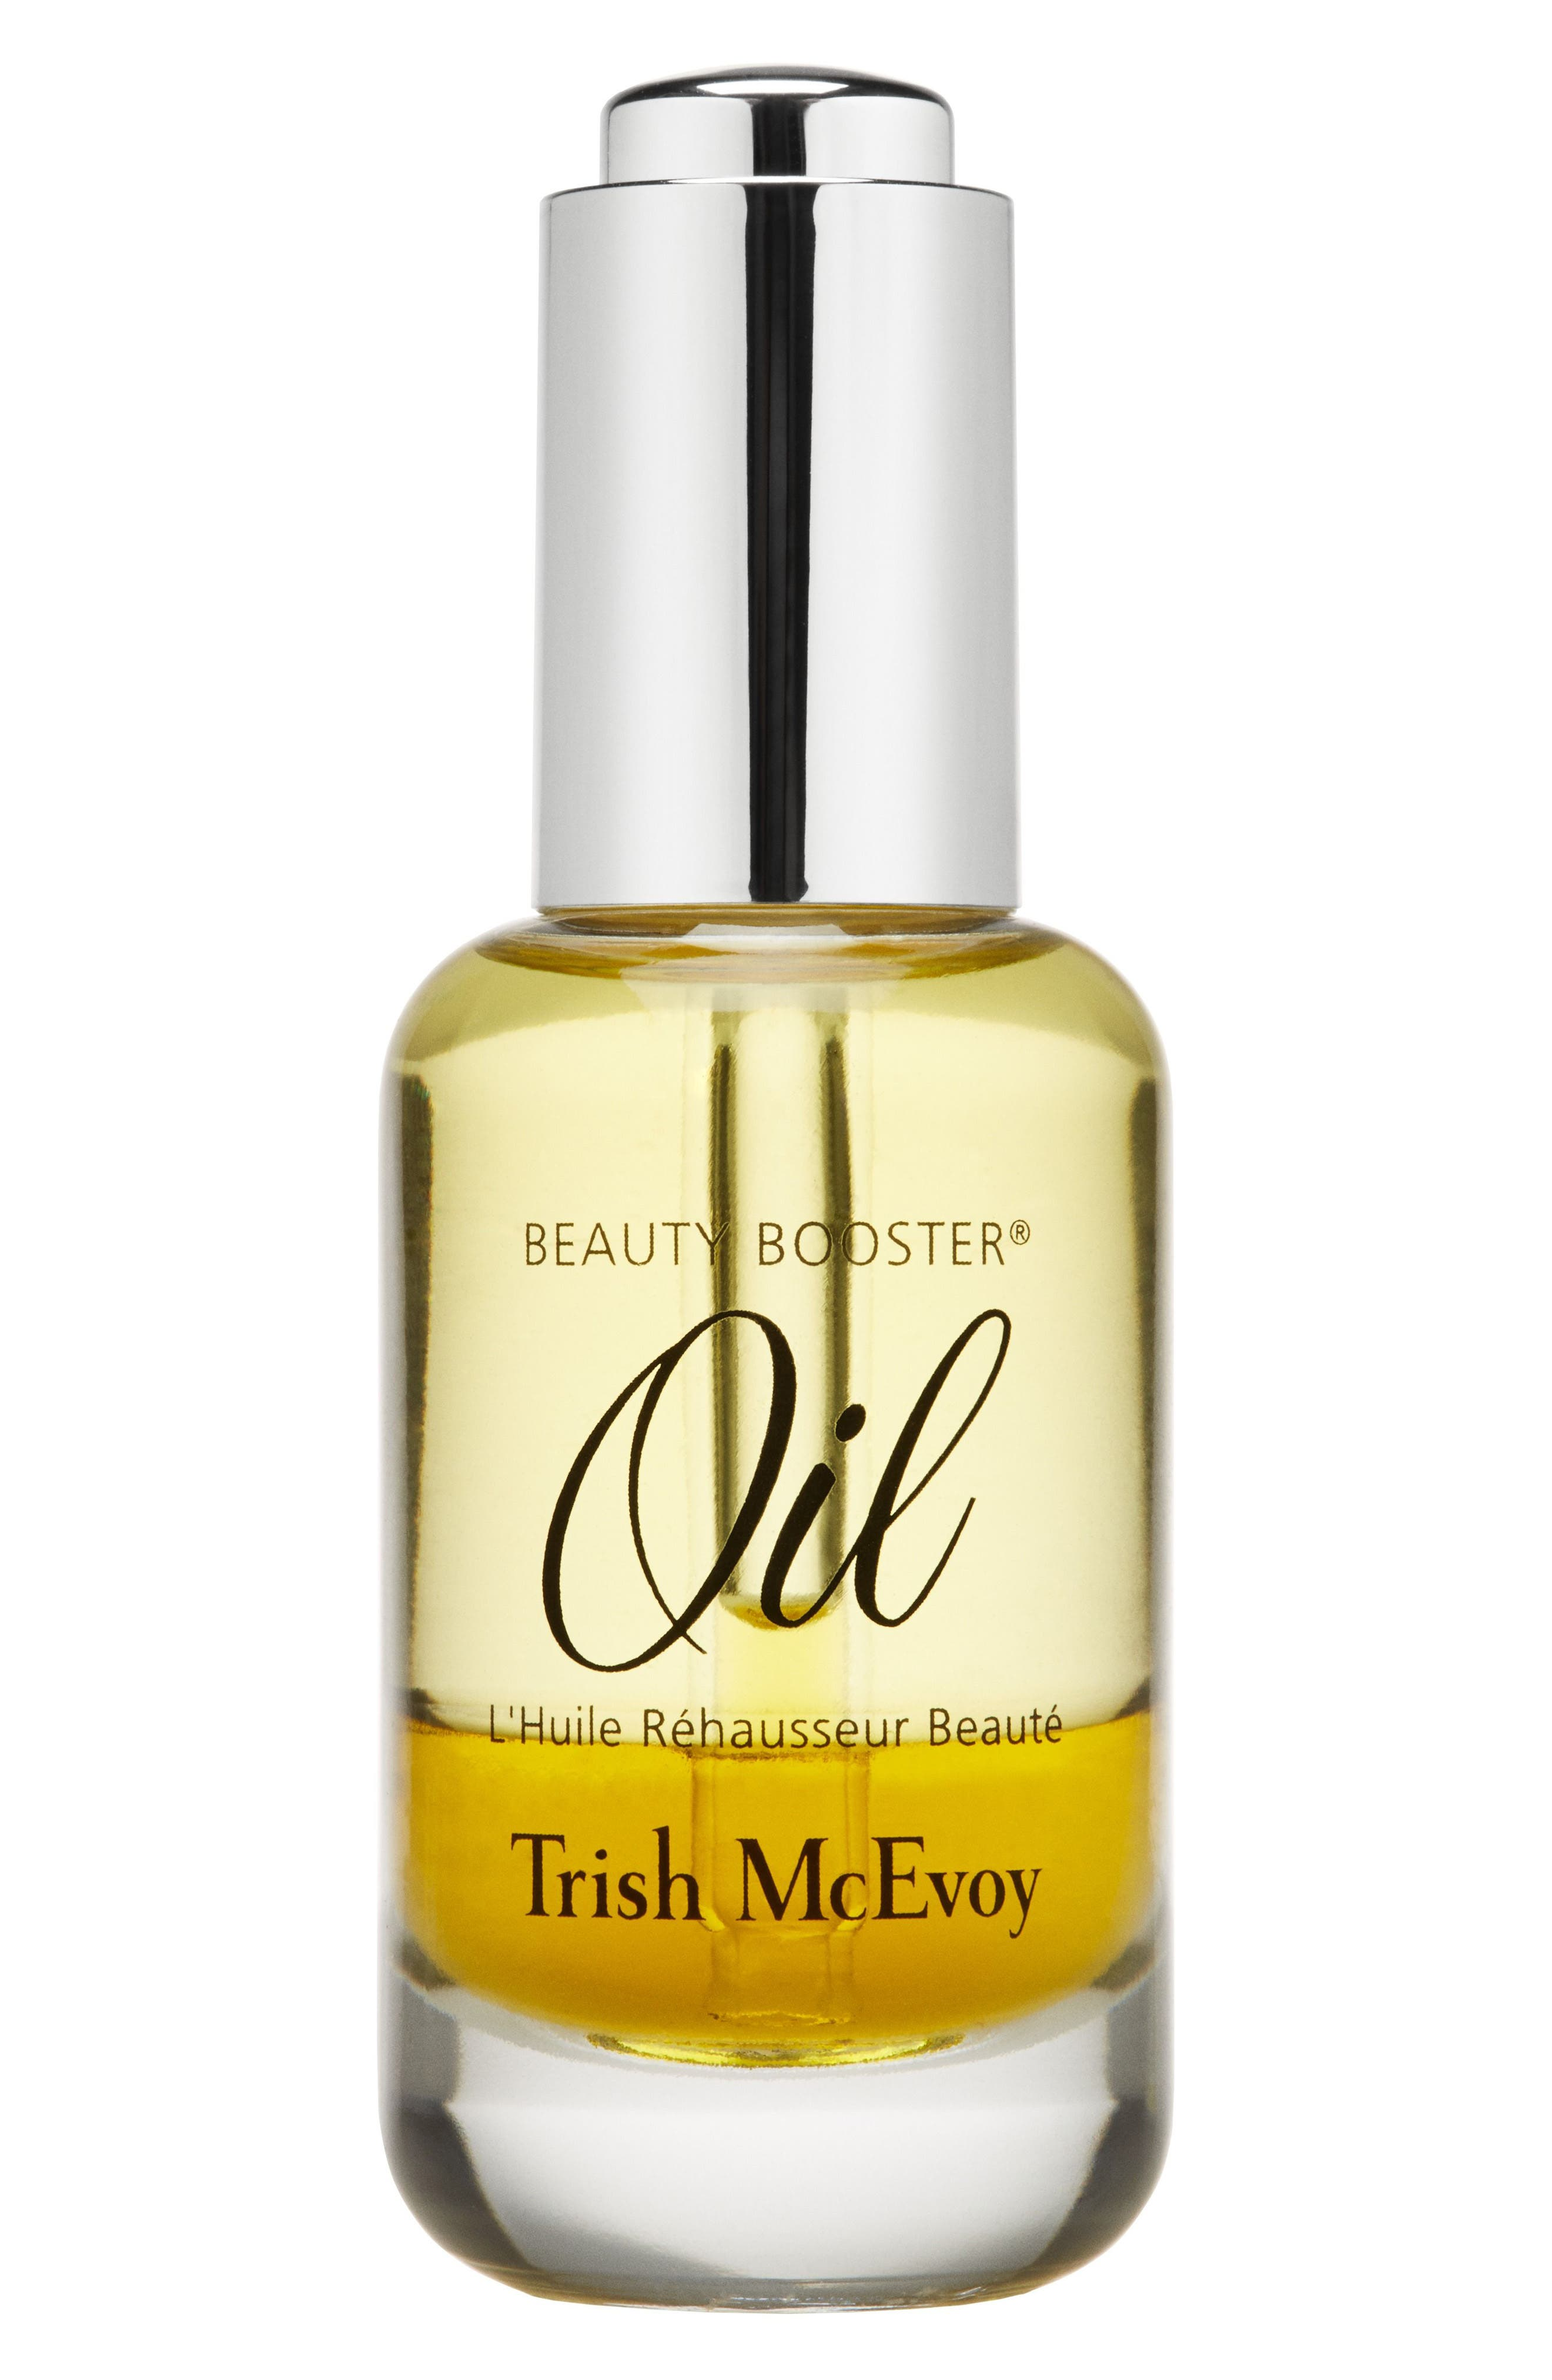 Trish McEvoy Beauty Booster® Oil